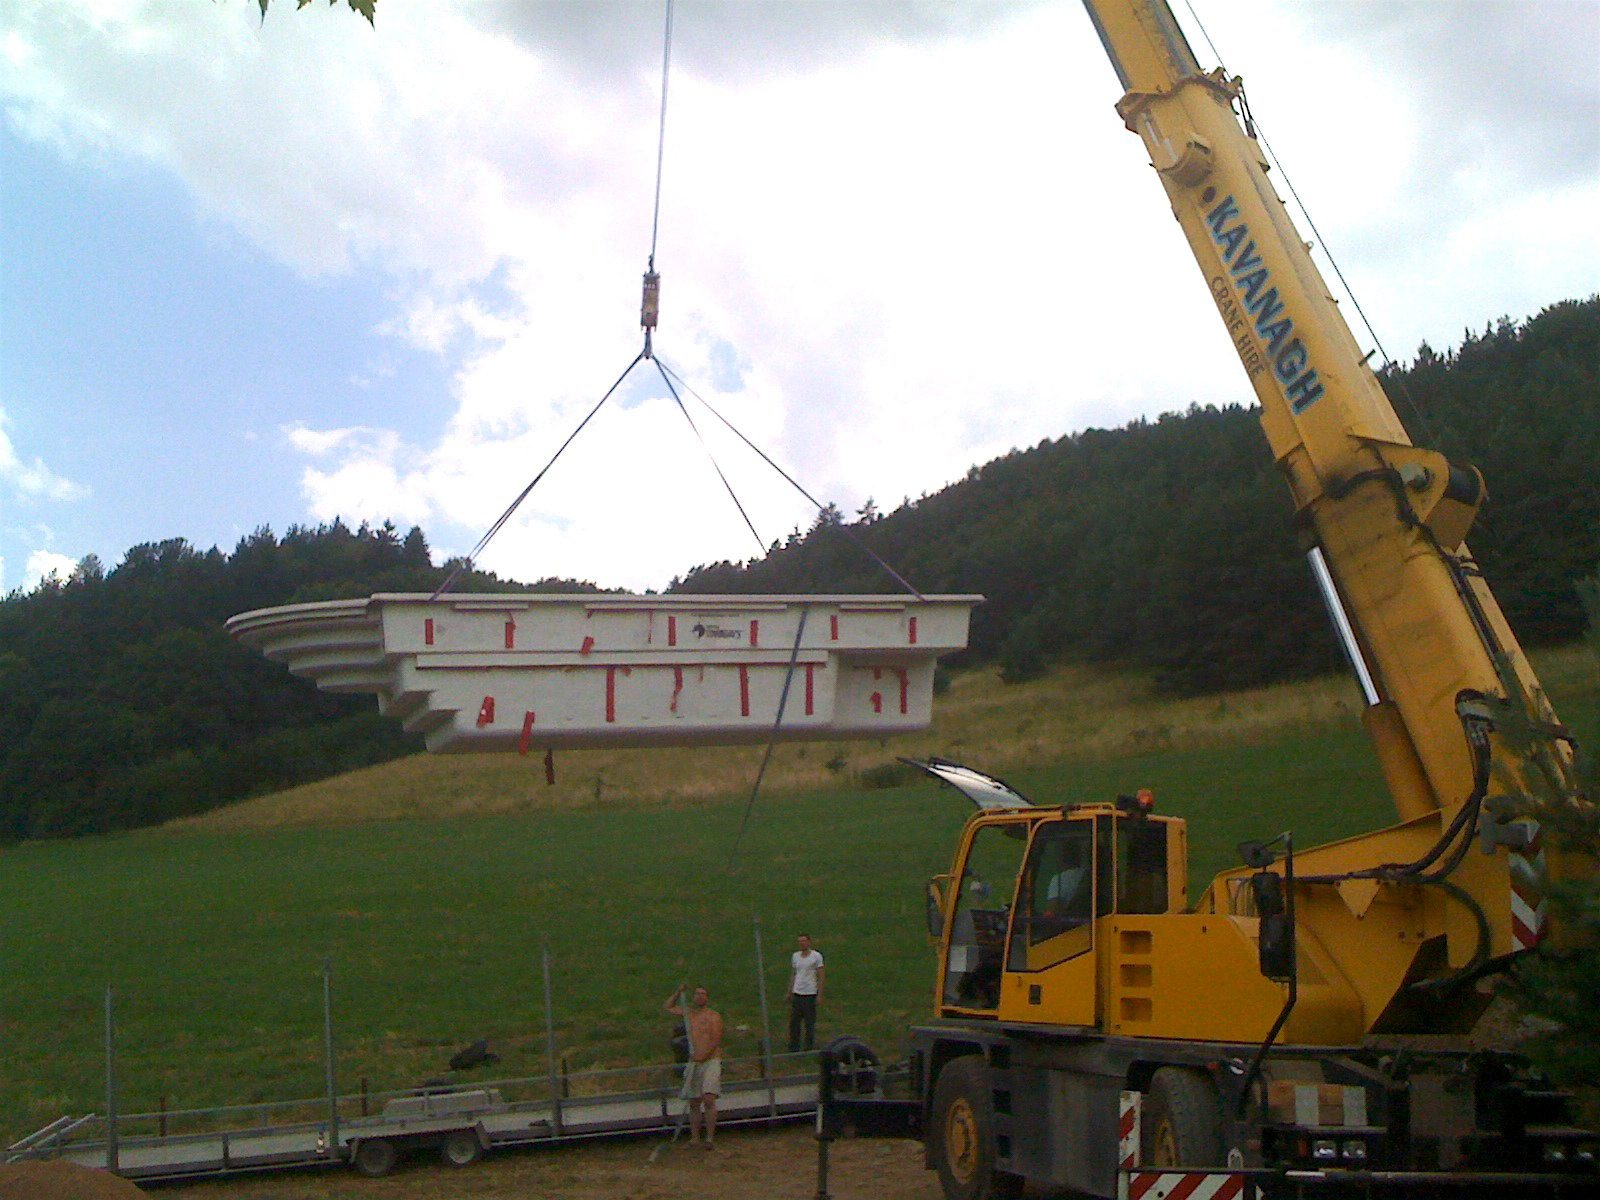 Pool construction – placing the ceramic pool with a crane